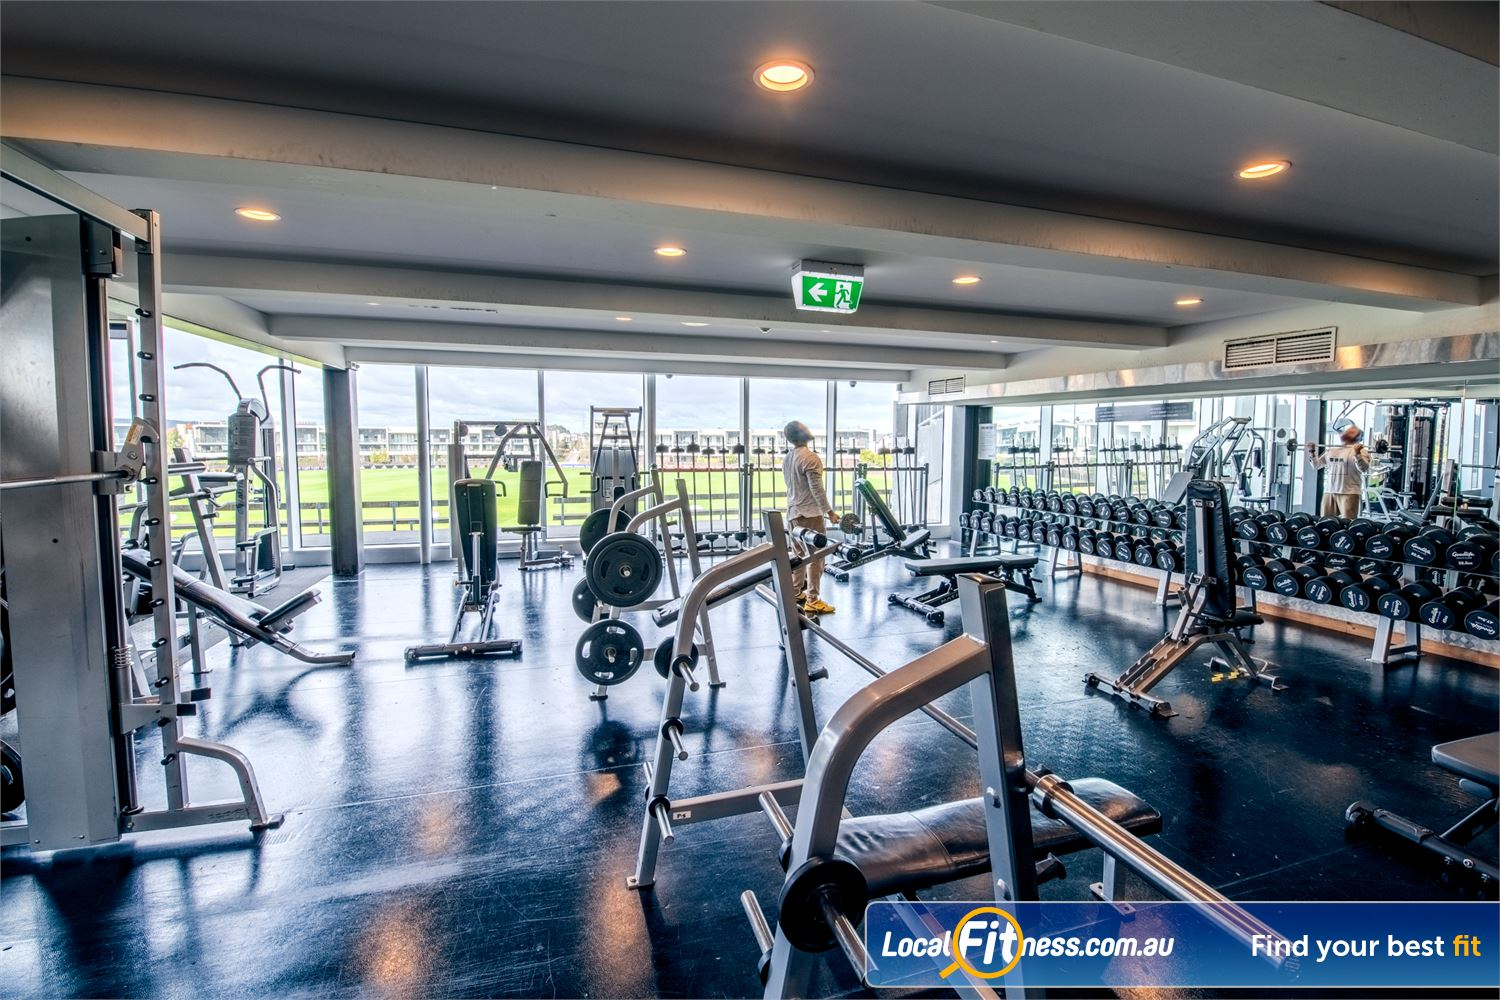 Goodlife Health Clubs Waverley Park Near Noble Park Our Mulgrave gym provides a fully equipped free-weights area.